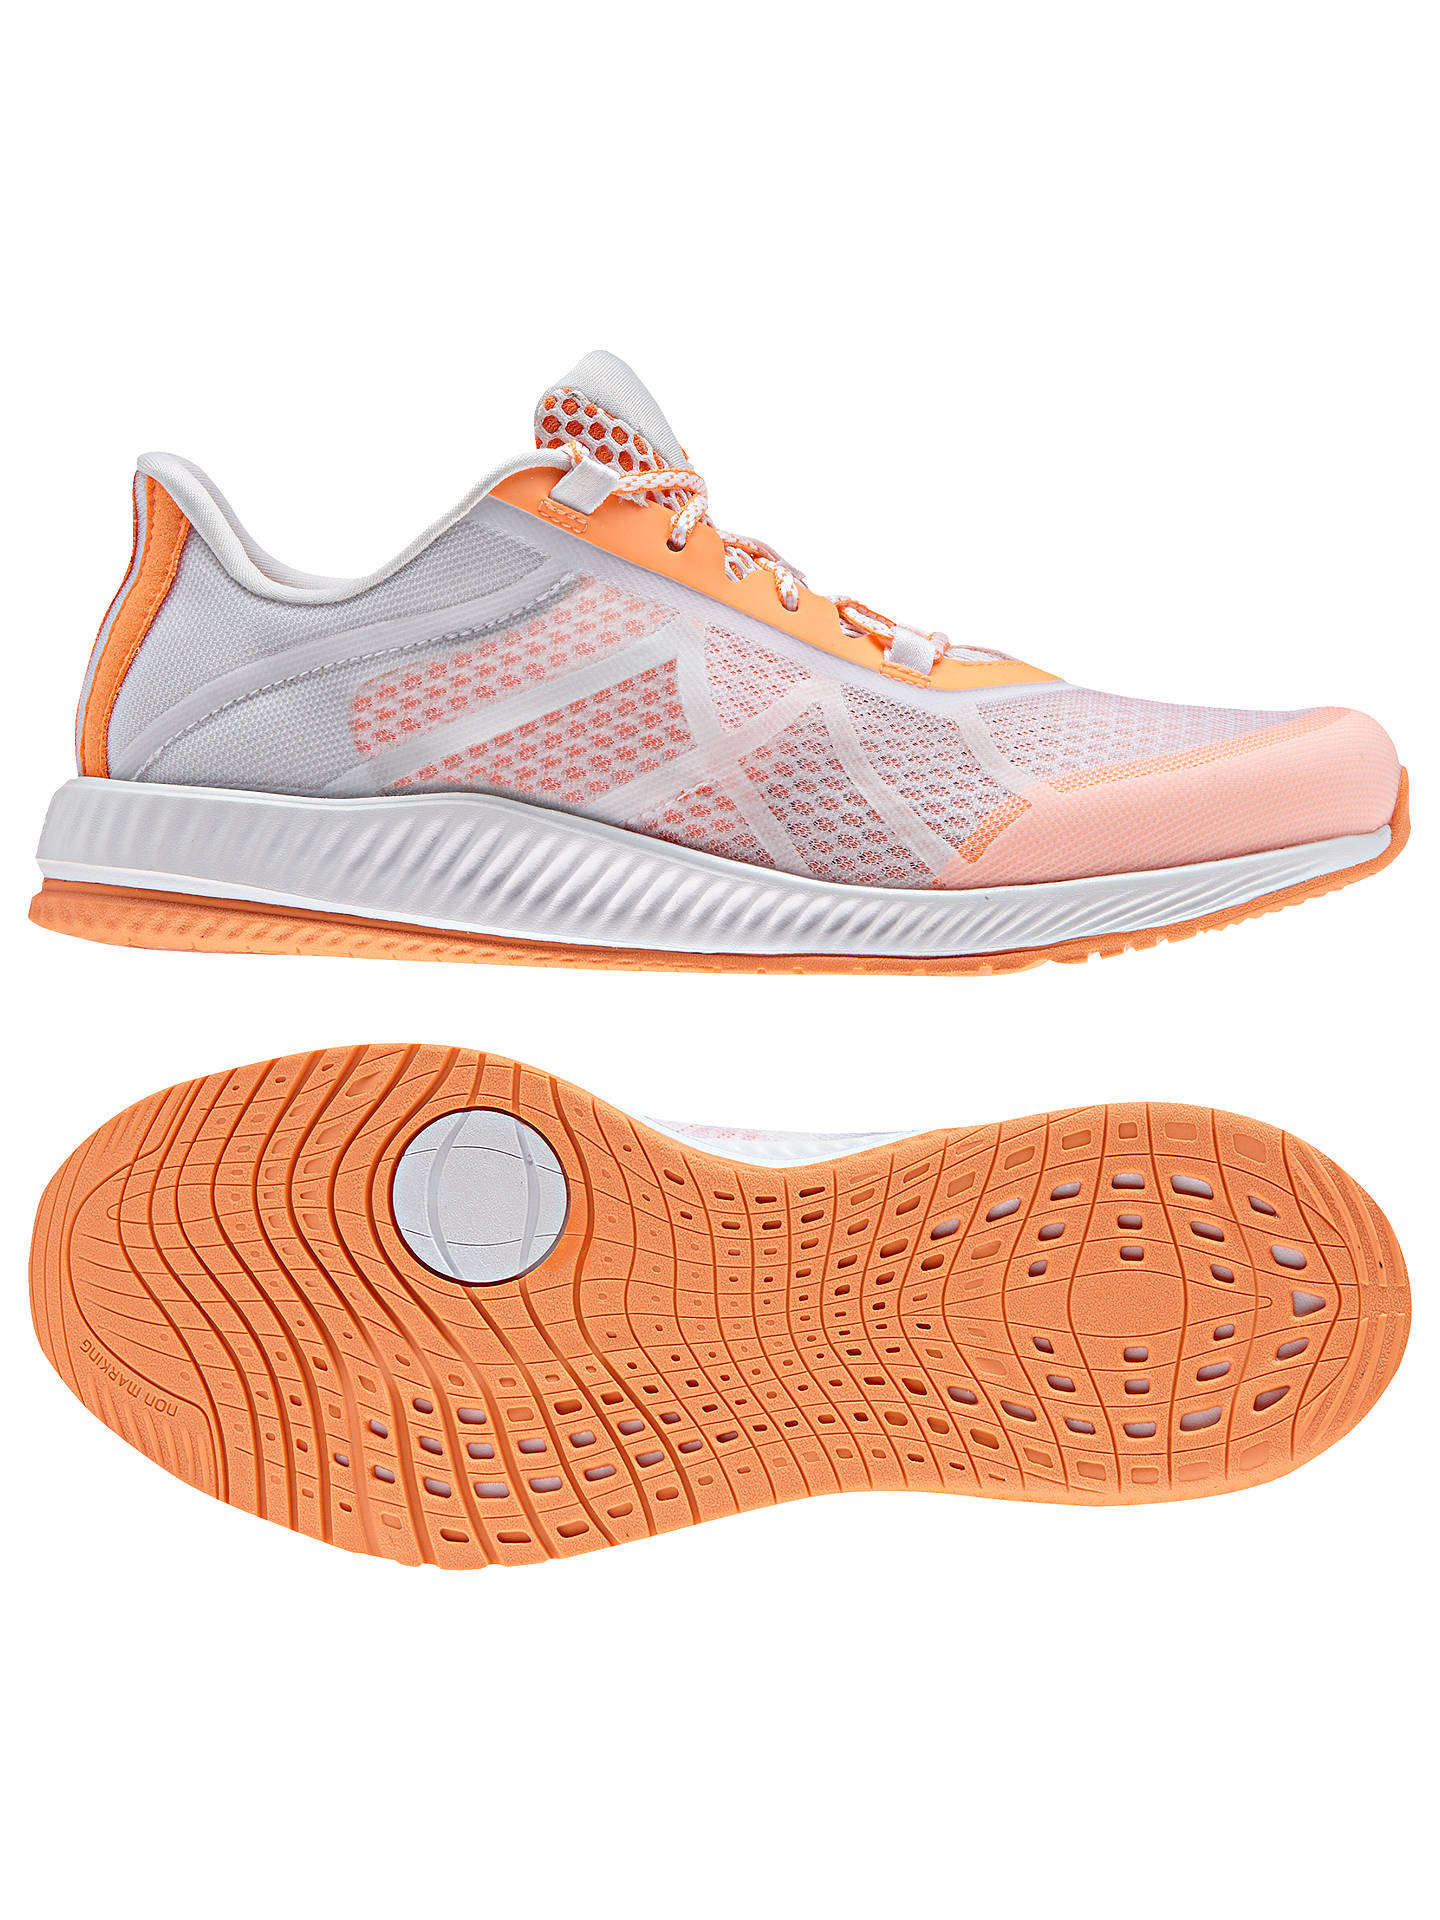 este Simposio Rafflesia Arnoldi  Adidas Gymbreaker Bounce Women's Cross Trainers, White/Orange at John Lewis  & Partners